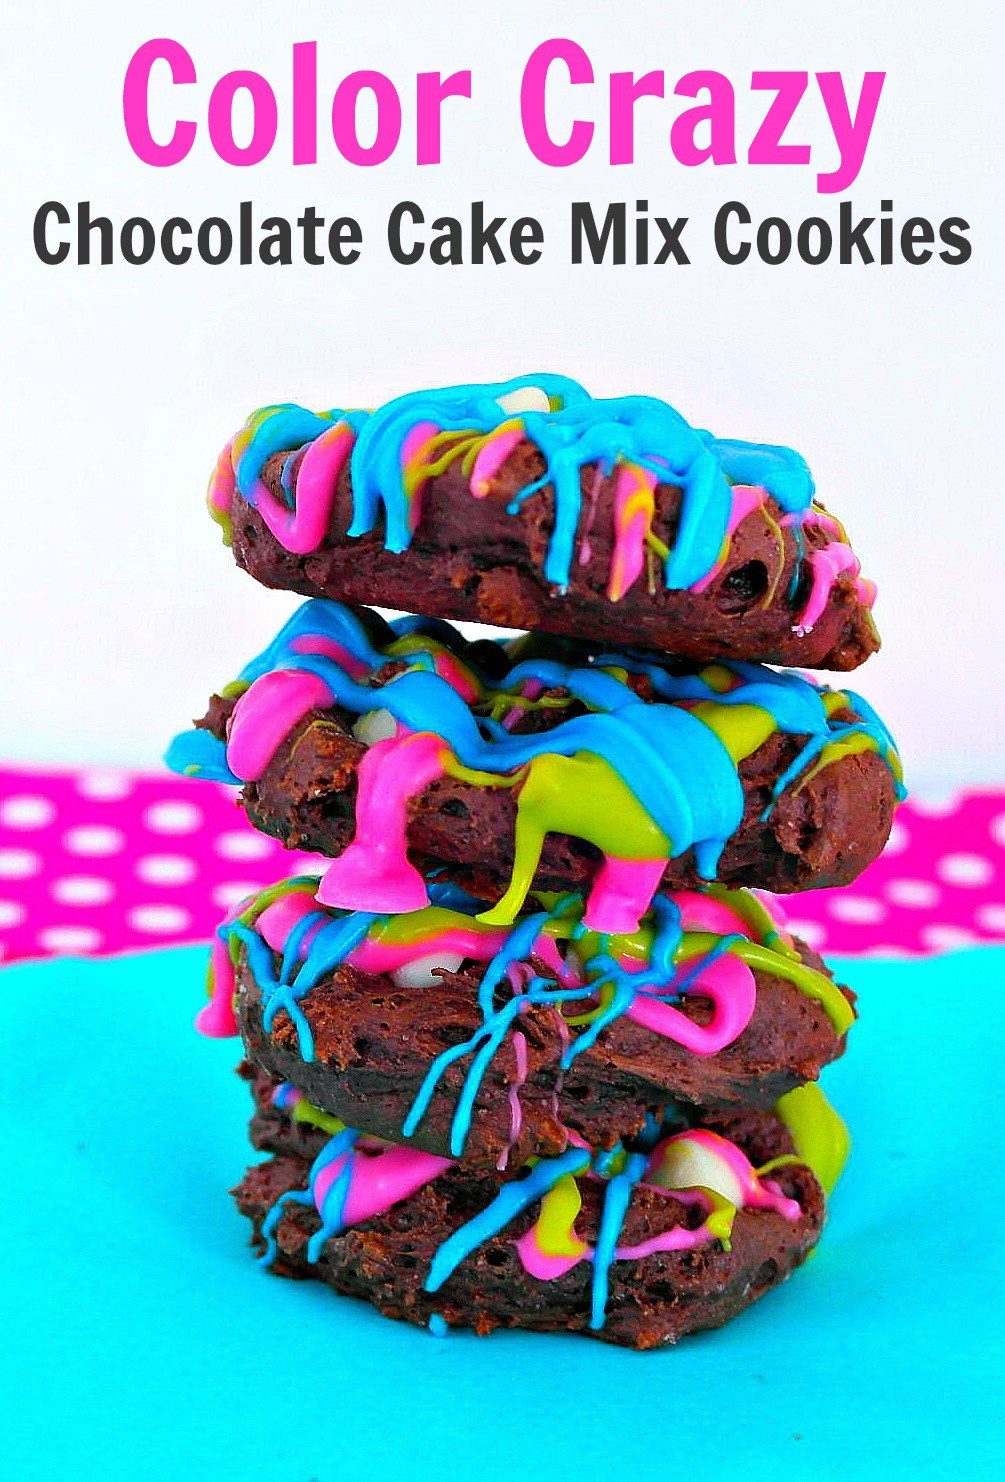 Color Crazy Chocolate Cake Mix Cookies